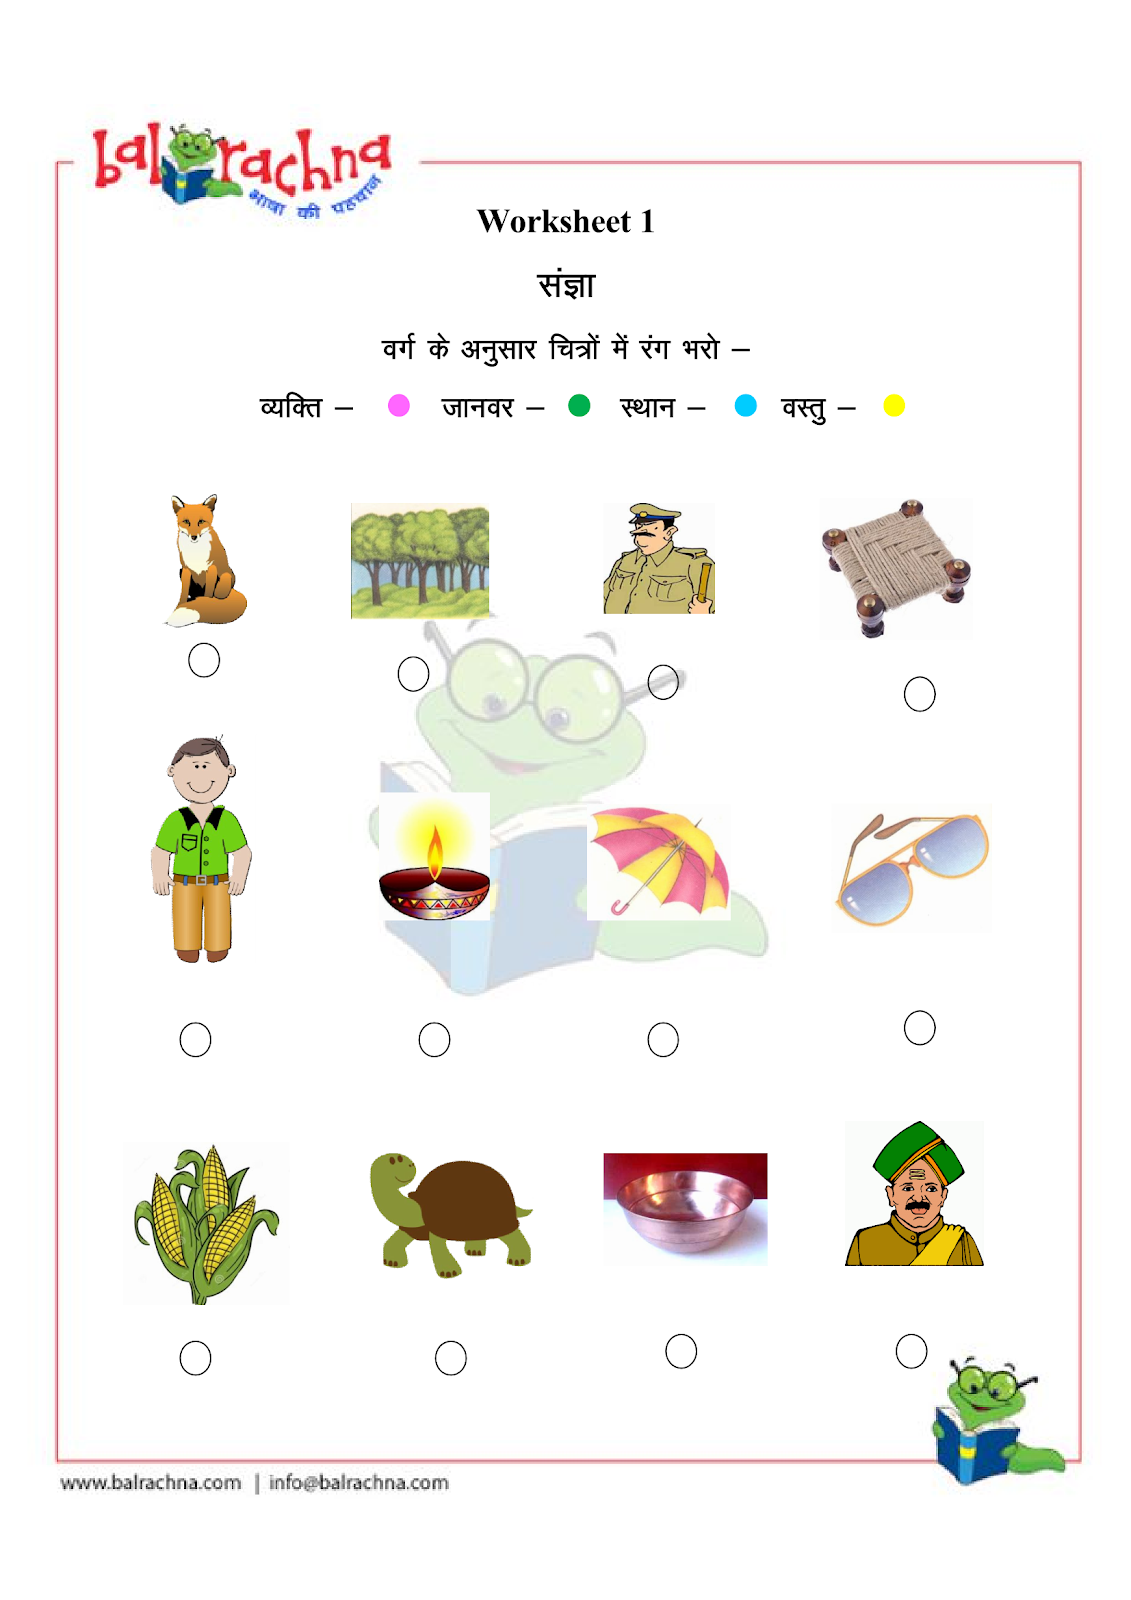 Balrachna Sangya Noun 1e Naming Words For Preschool